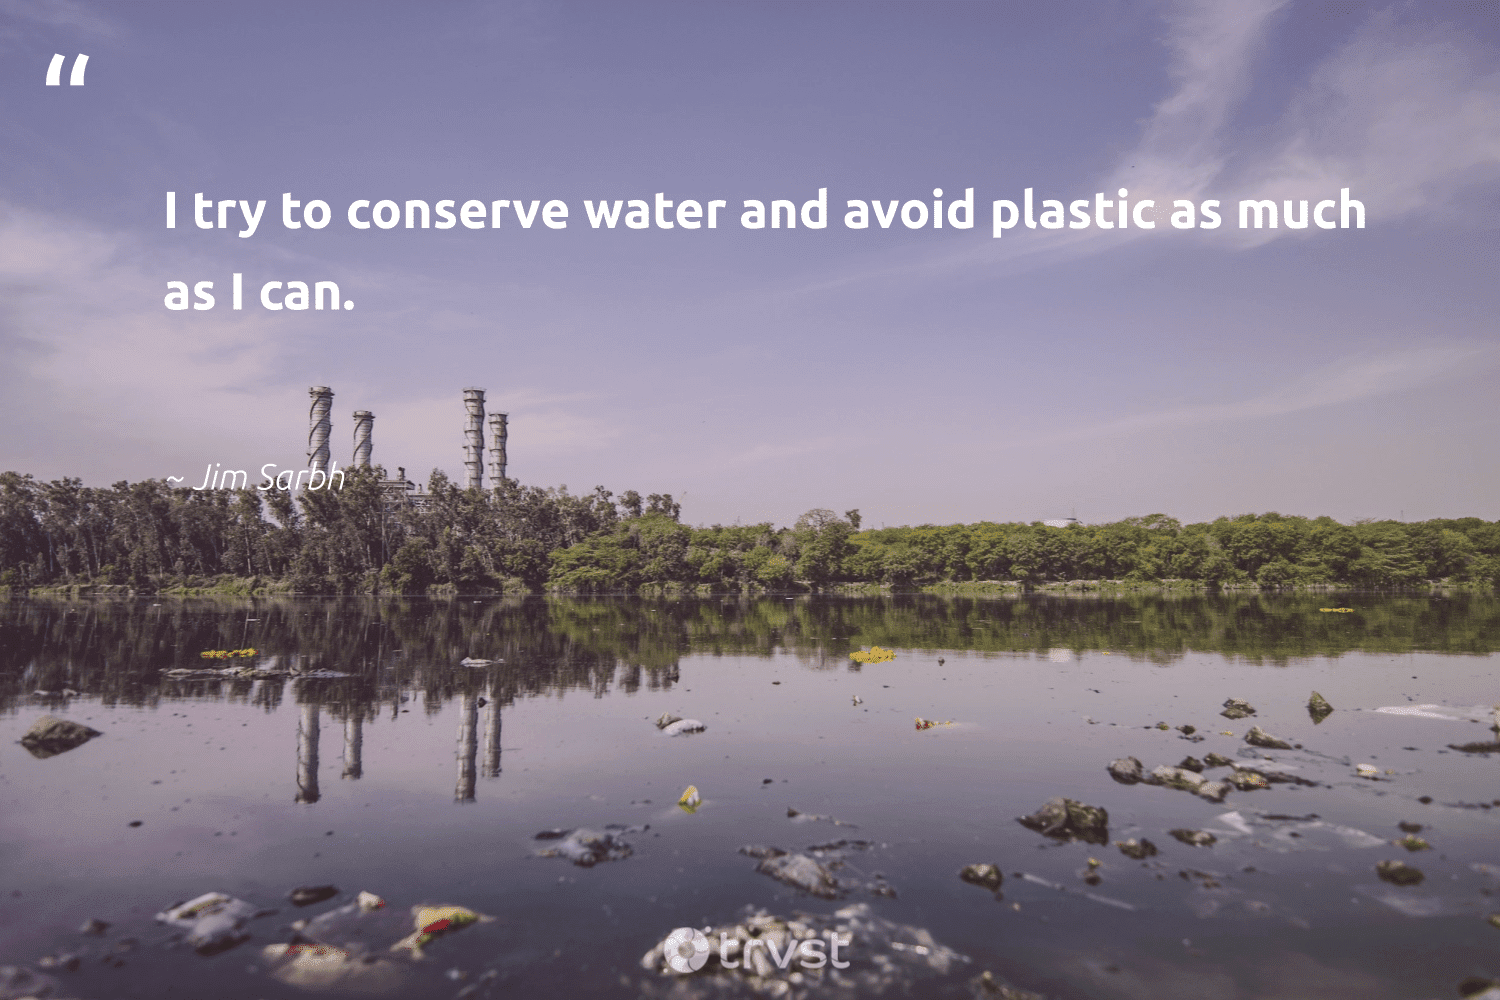 """""""I try to conserve water and avoid plastic as much as I can.""""  - Jim Sarbh #trvst #quotes #plasticwaste #plastic #water #saynotooneuseplastic #wecandobetter #waronwaste #dosomething #scrapplastic #wastefree #environmentallyfriendly"""